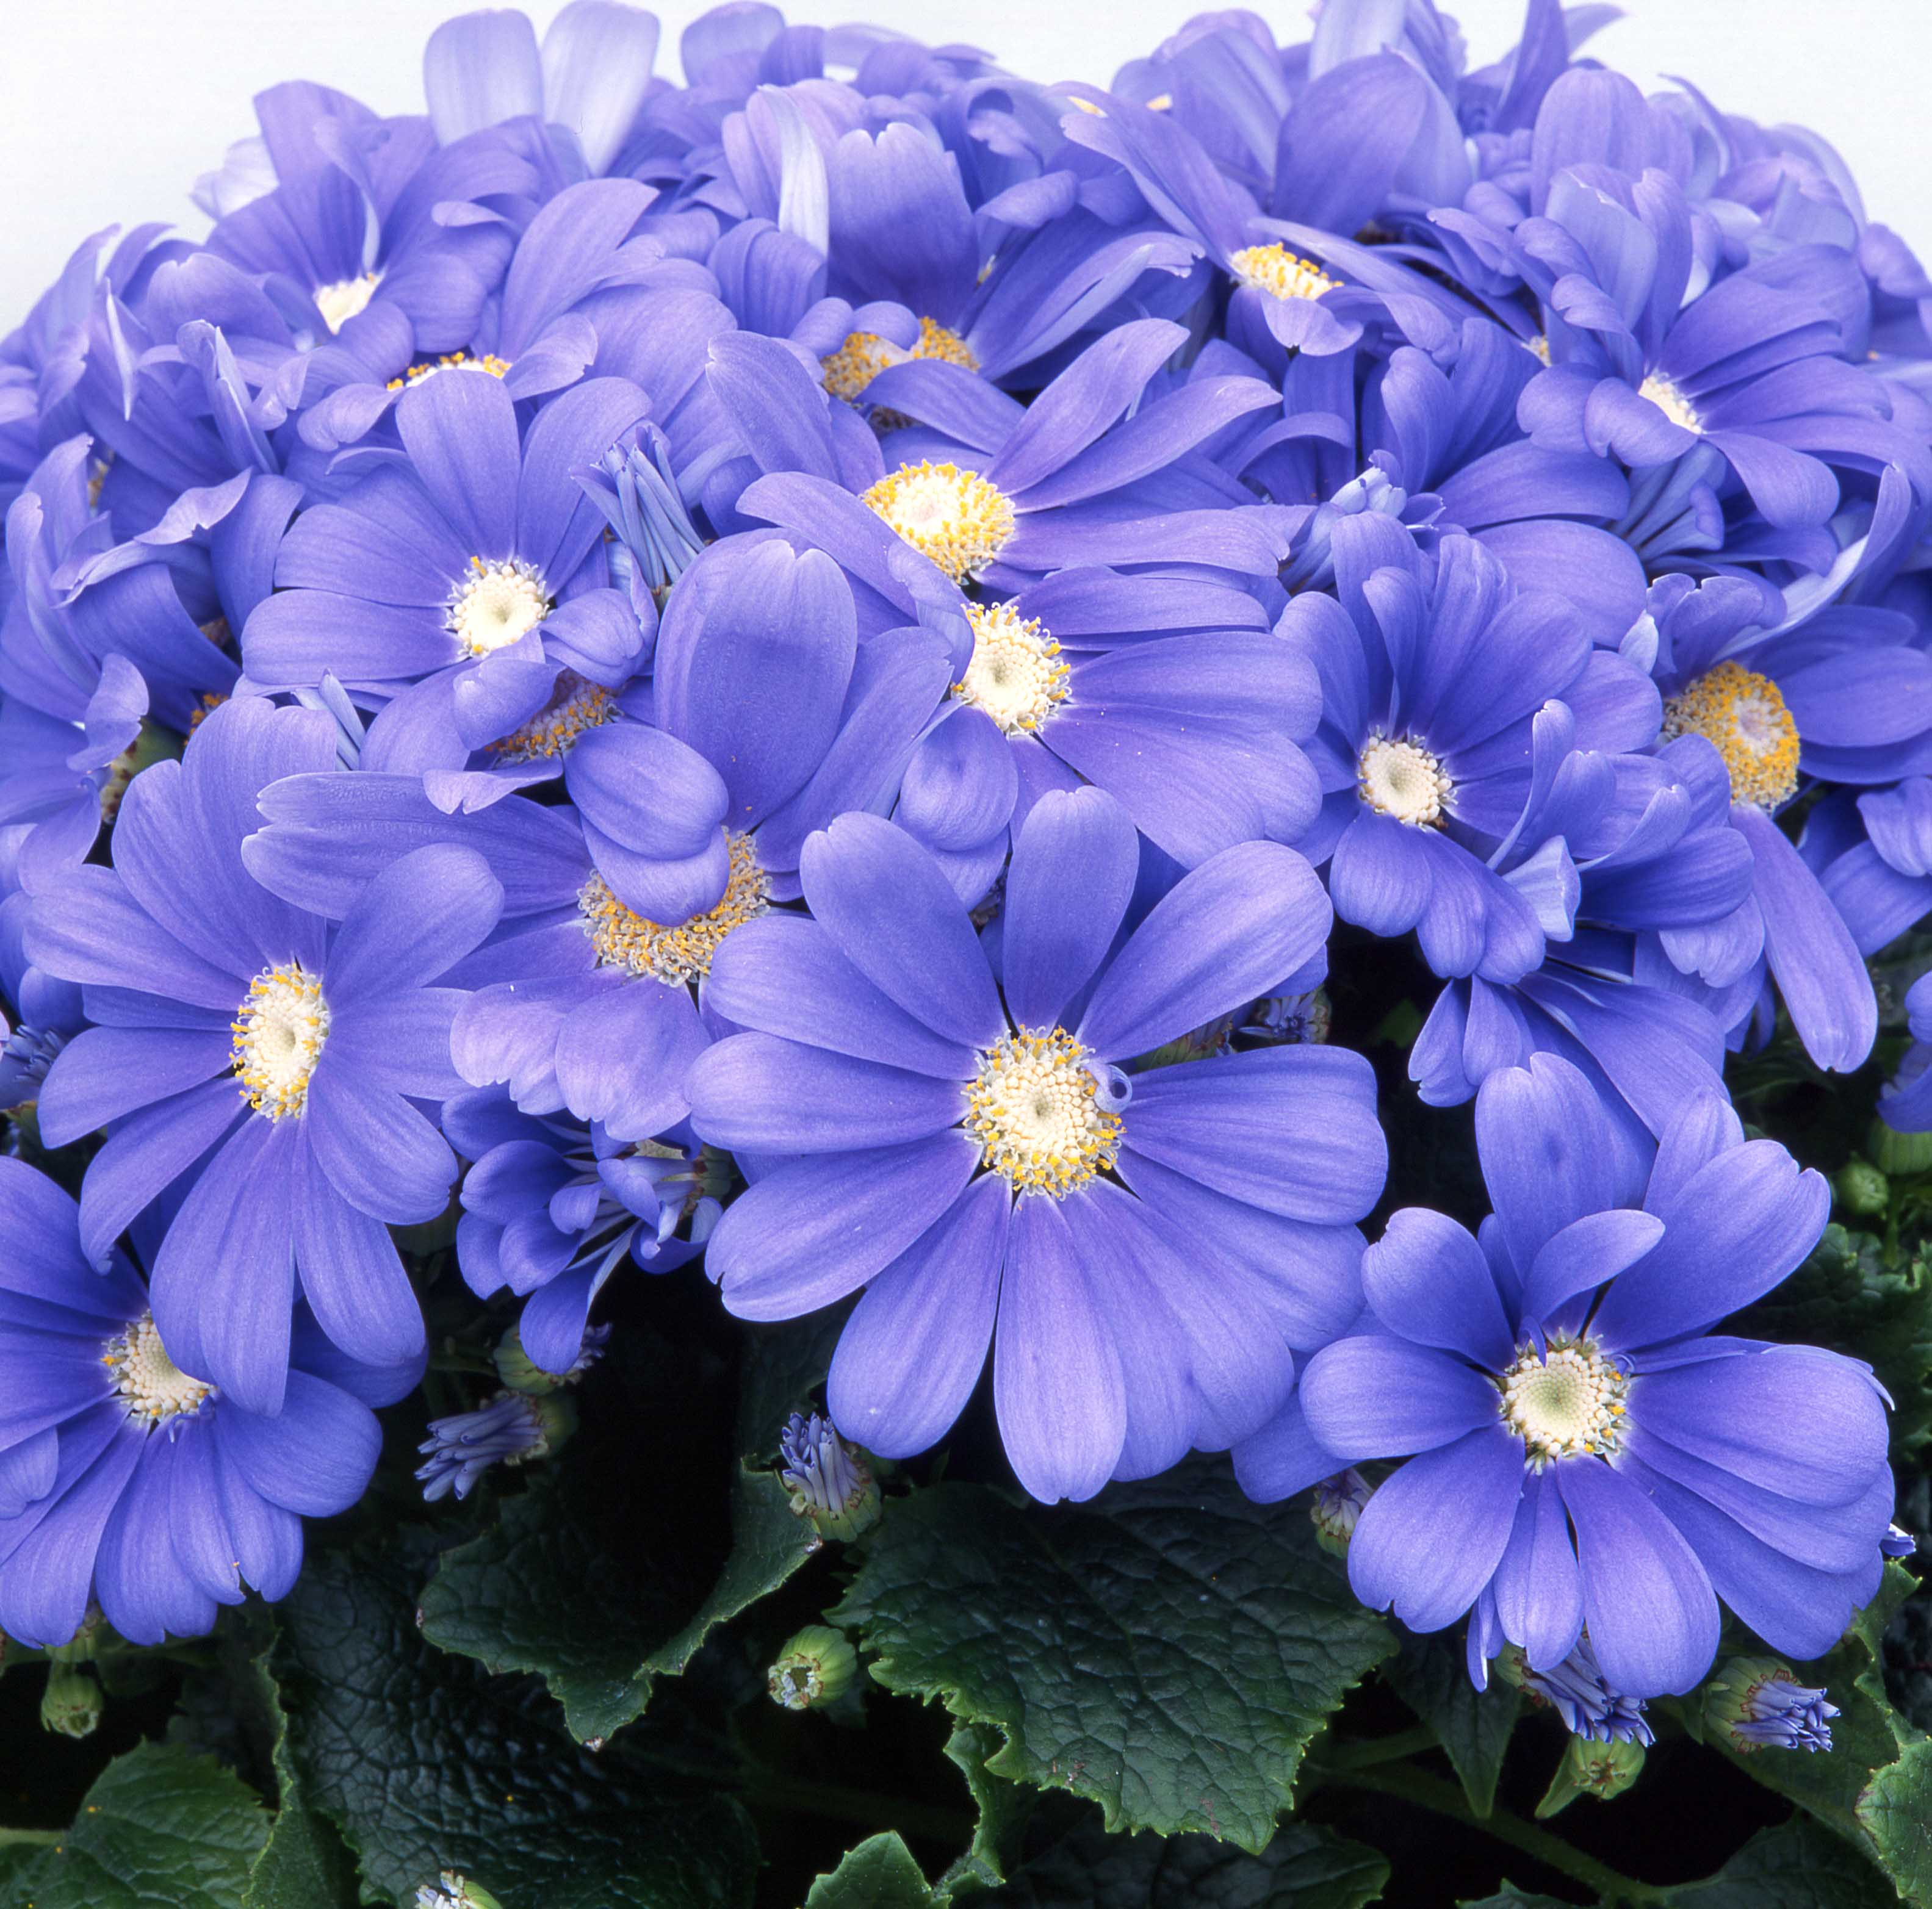 Cineraria Satellite Sky Blue Shades F1 Hybrid